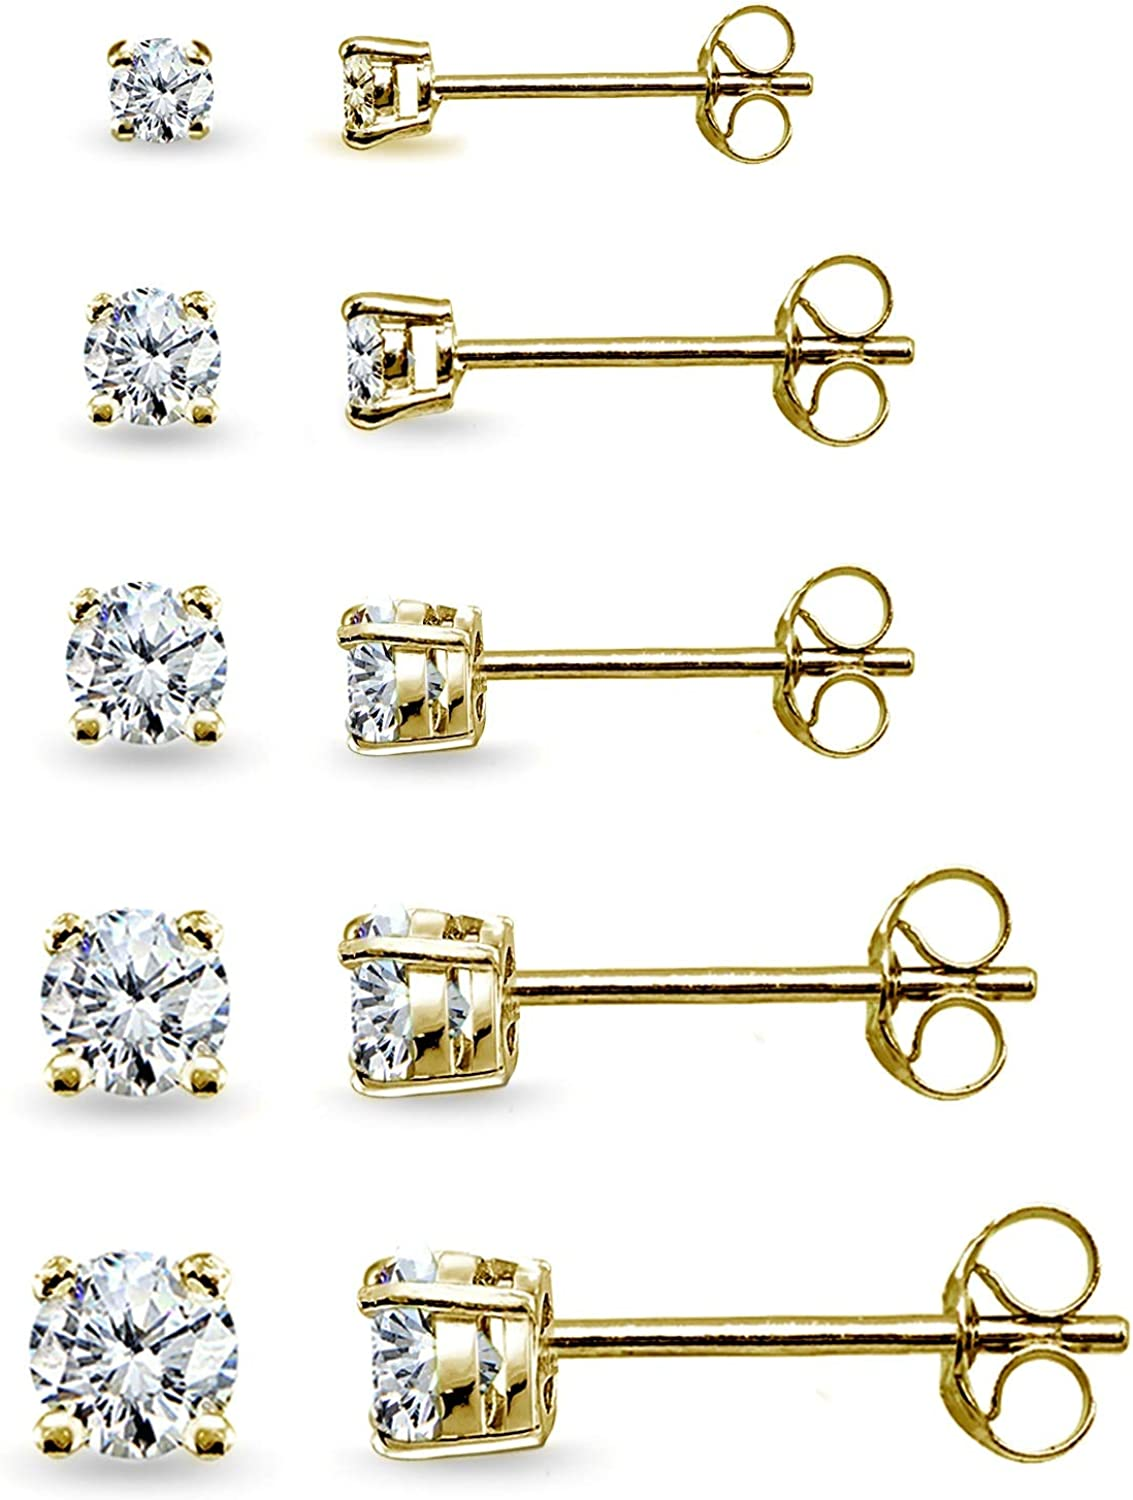 5 Pair Set Sterling Silver Cubic Zirconia Round Stud Earrings 2mm 3mm 4mm 5mm 6mm